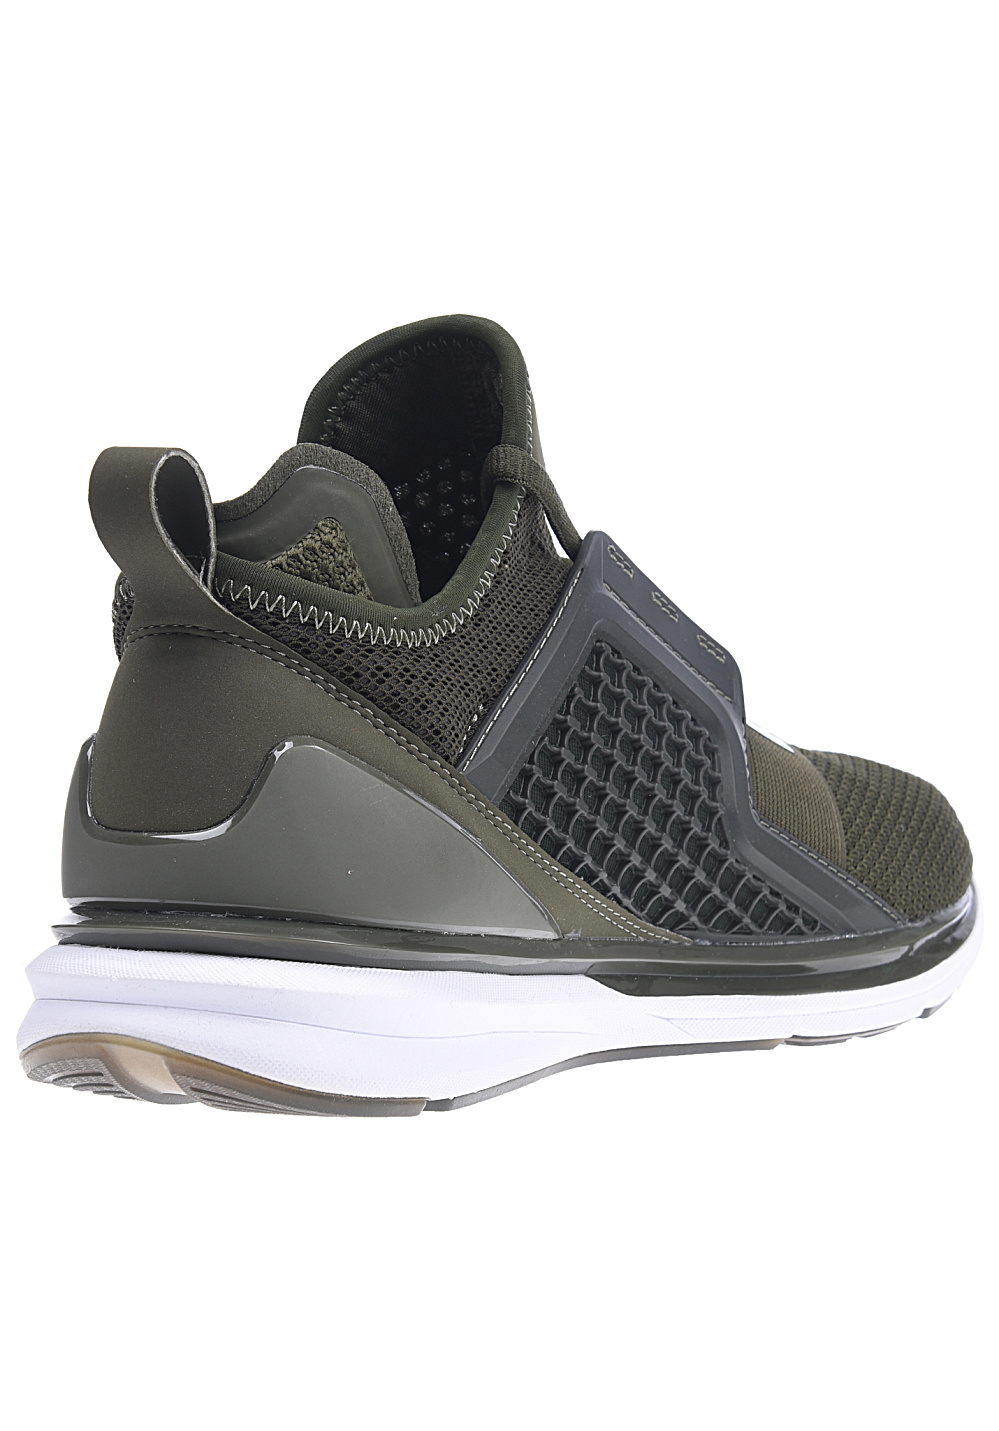 watch 25103 1ad52 Puma Ignite Limitless Weave - Sneakers for Men - Green